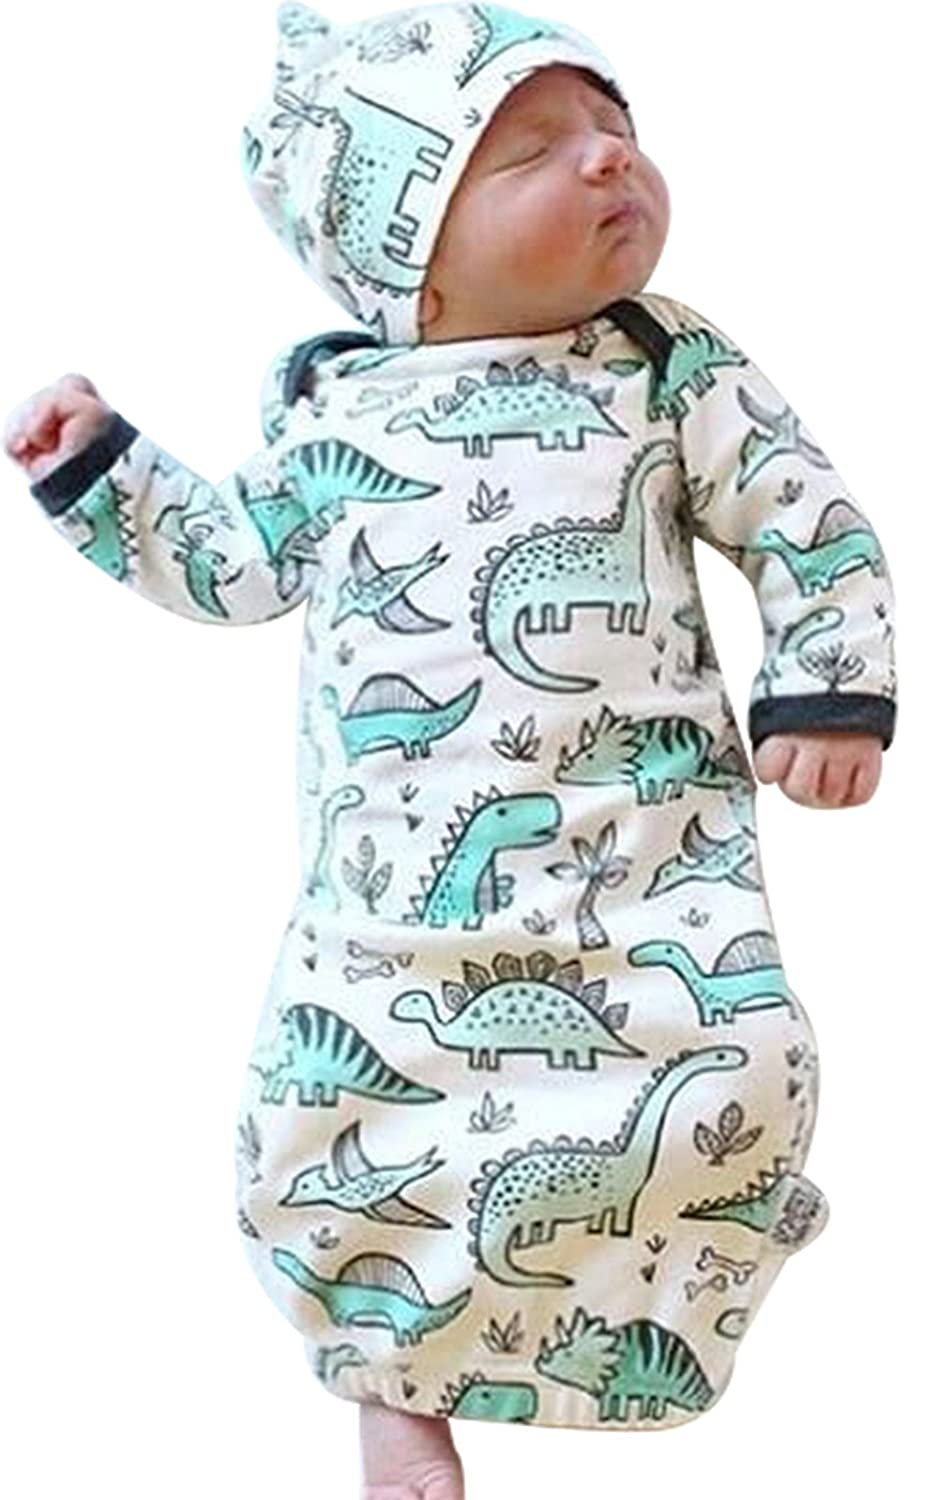 Newborn Baby Cartoon Dinosaur Sleep Gown Receiving Blankets Coming Home Outfit+Cap ELOVELY EY009-0/3M